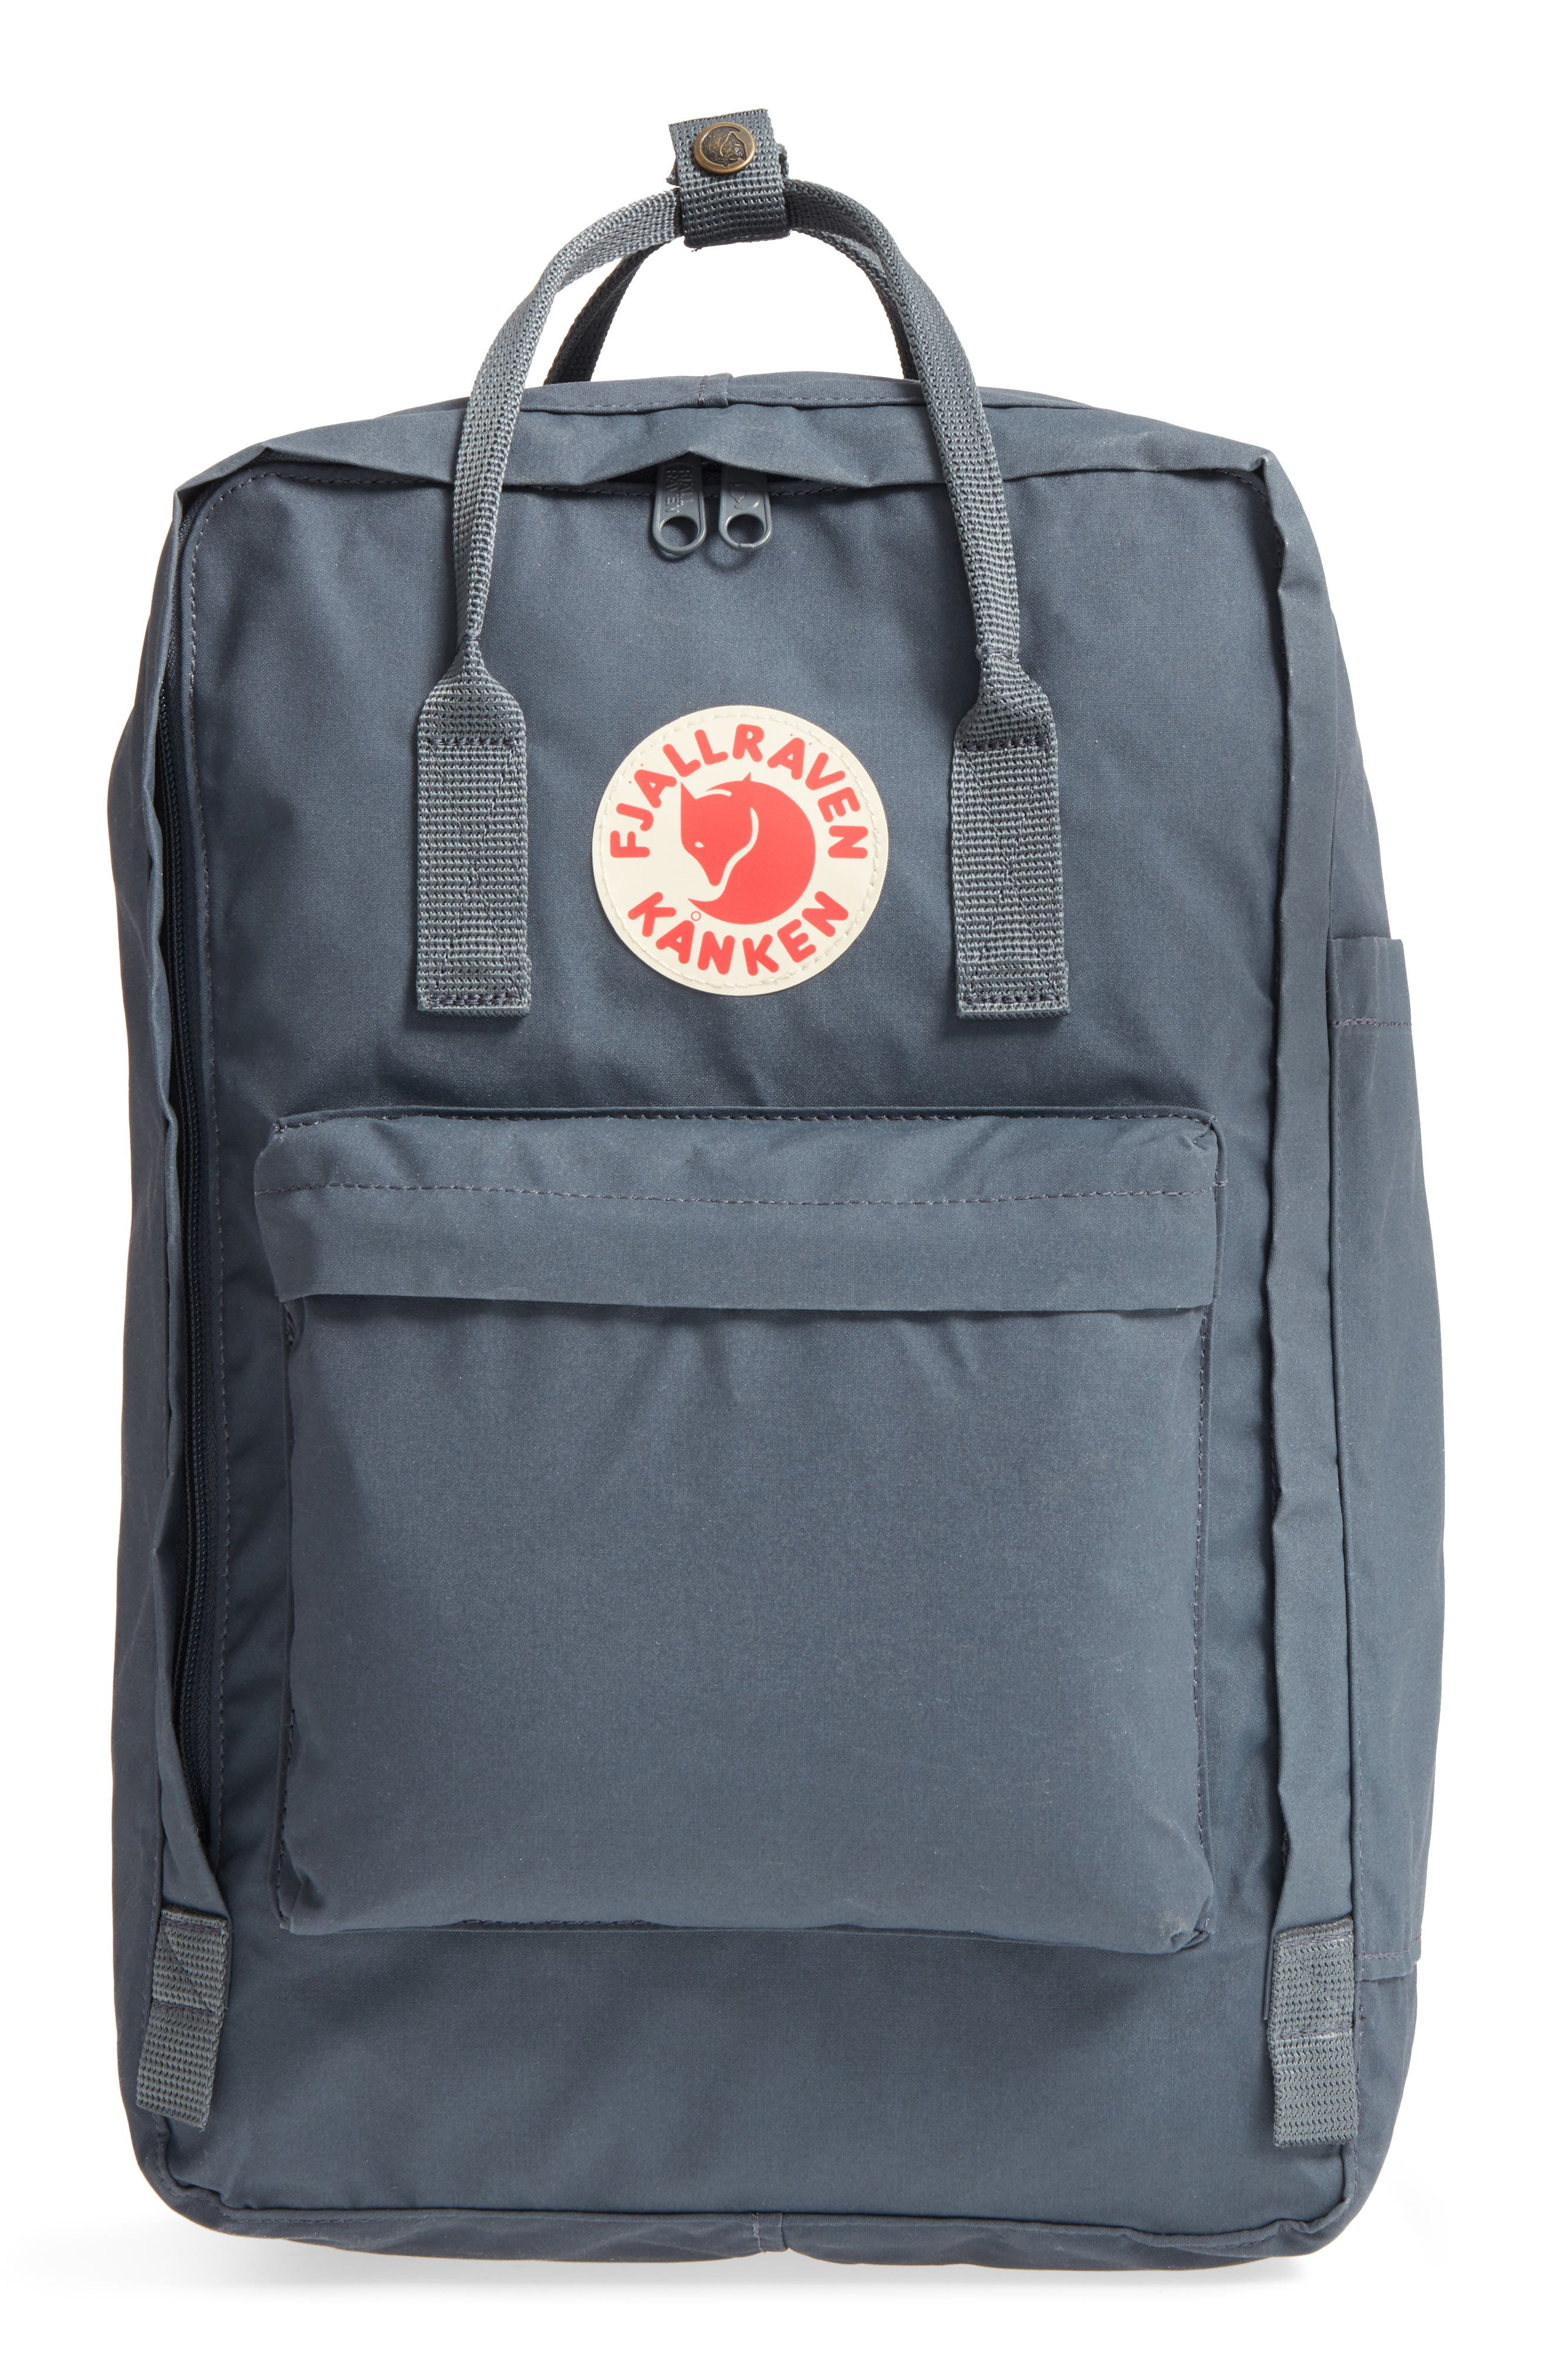 'Kånken' Laptop Backpack,                             Main thumbnail 1, color,                             022